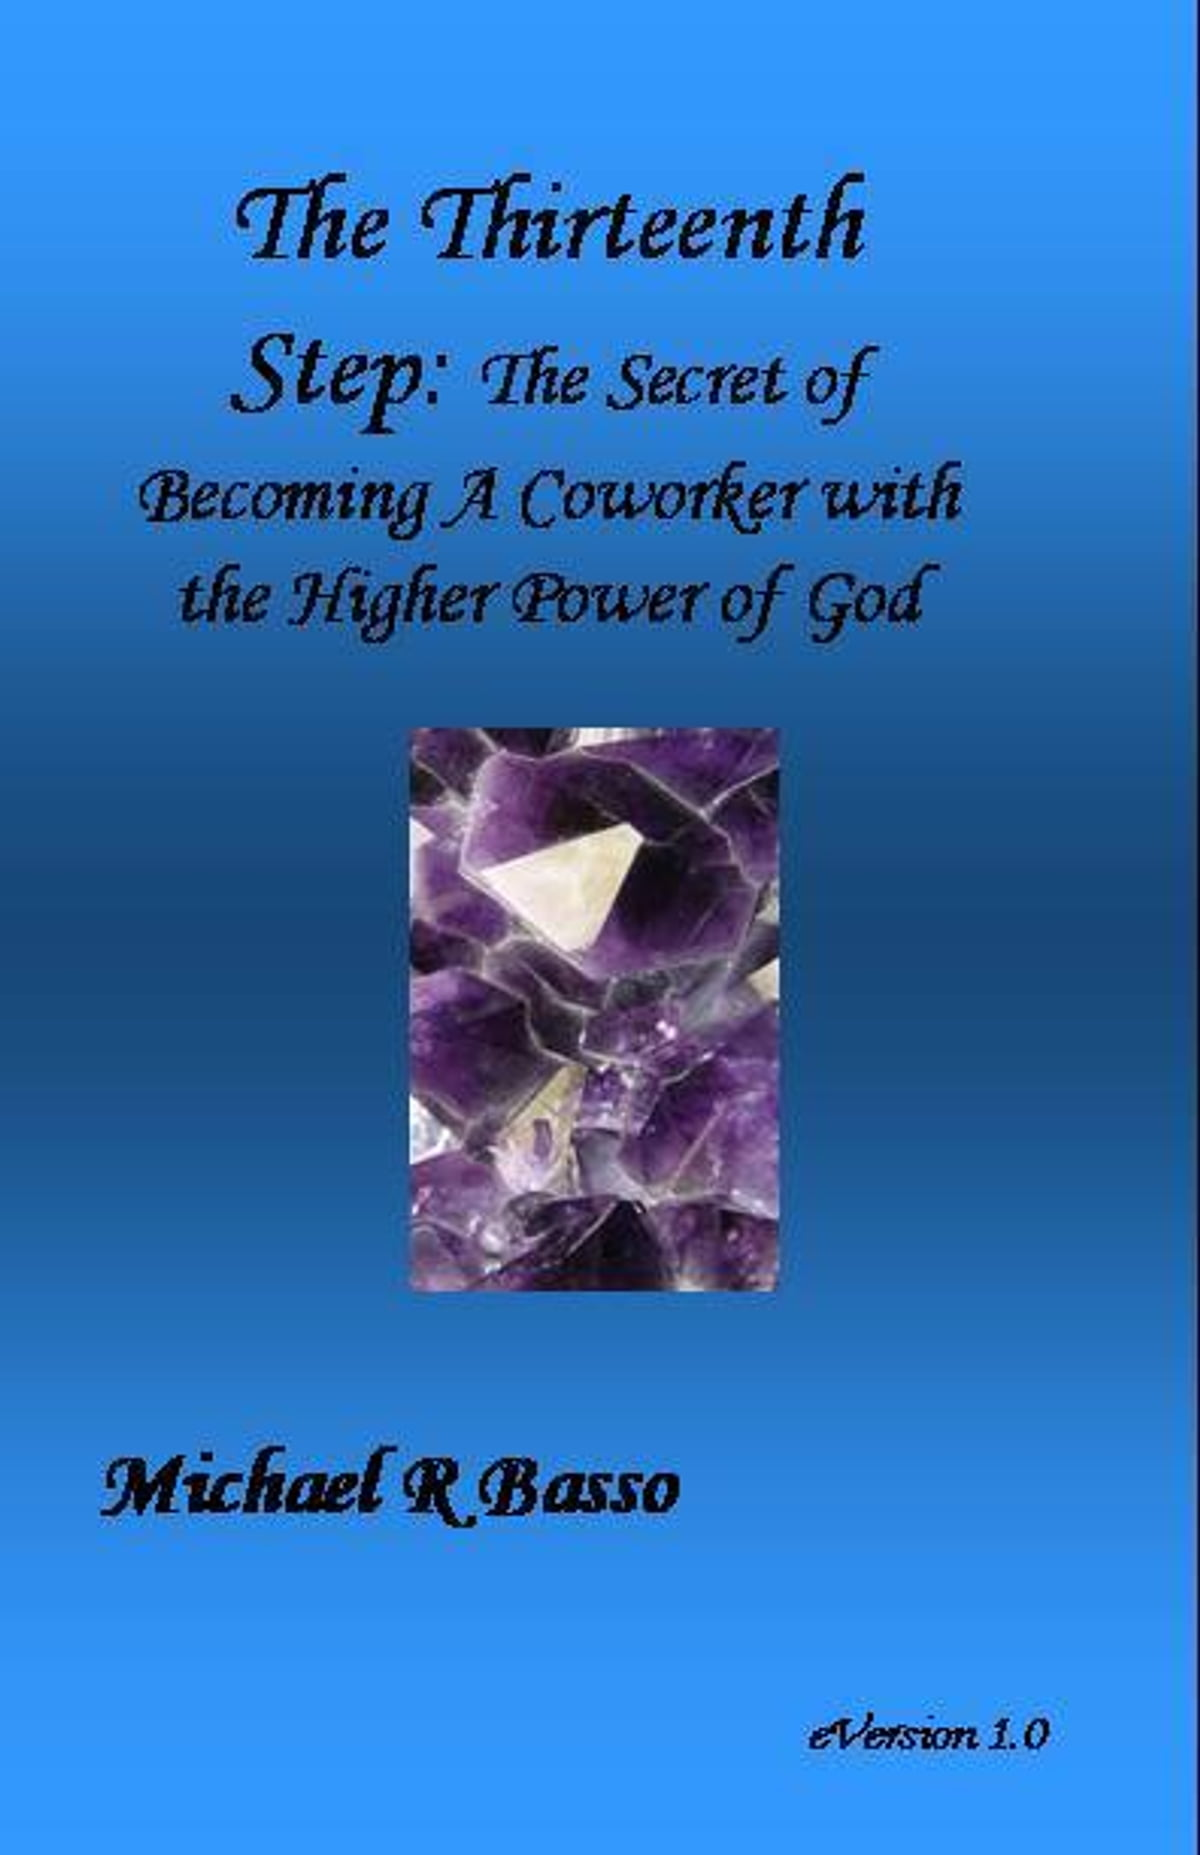 The Thirteenth Step: The Secret of Becoming a Co-worker with the Higher  Power of GOD ebook by Michael Basso - Rakuten Kobo